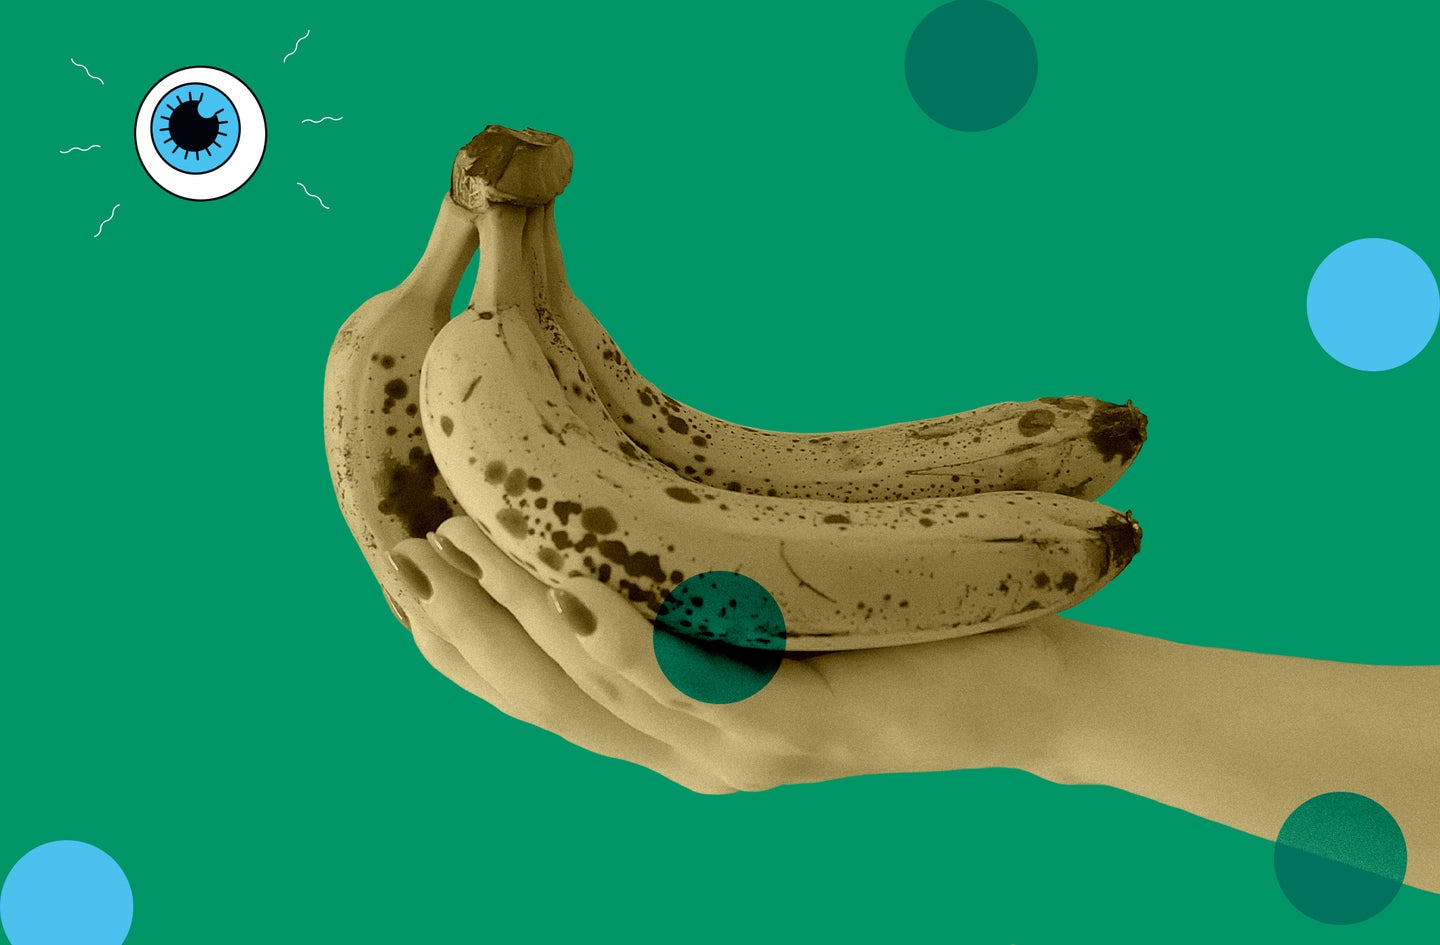 someone holds a bunch of bananas on a green background with blue and green polka dots and a small eyeball logo in the upper left corner